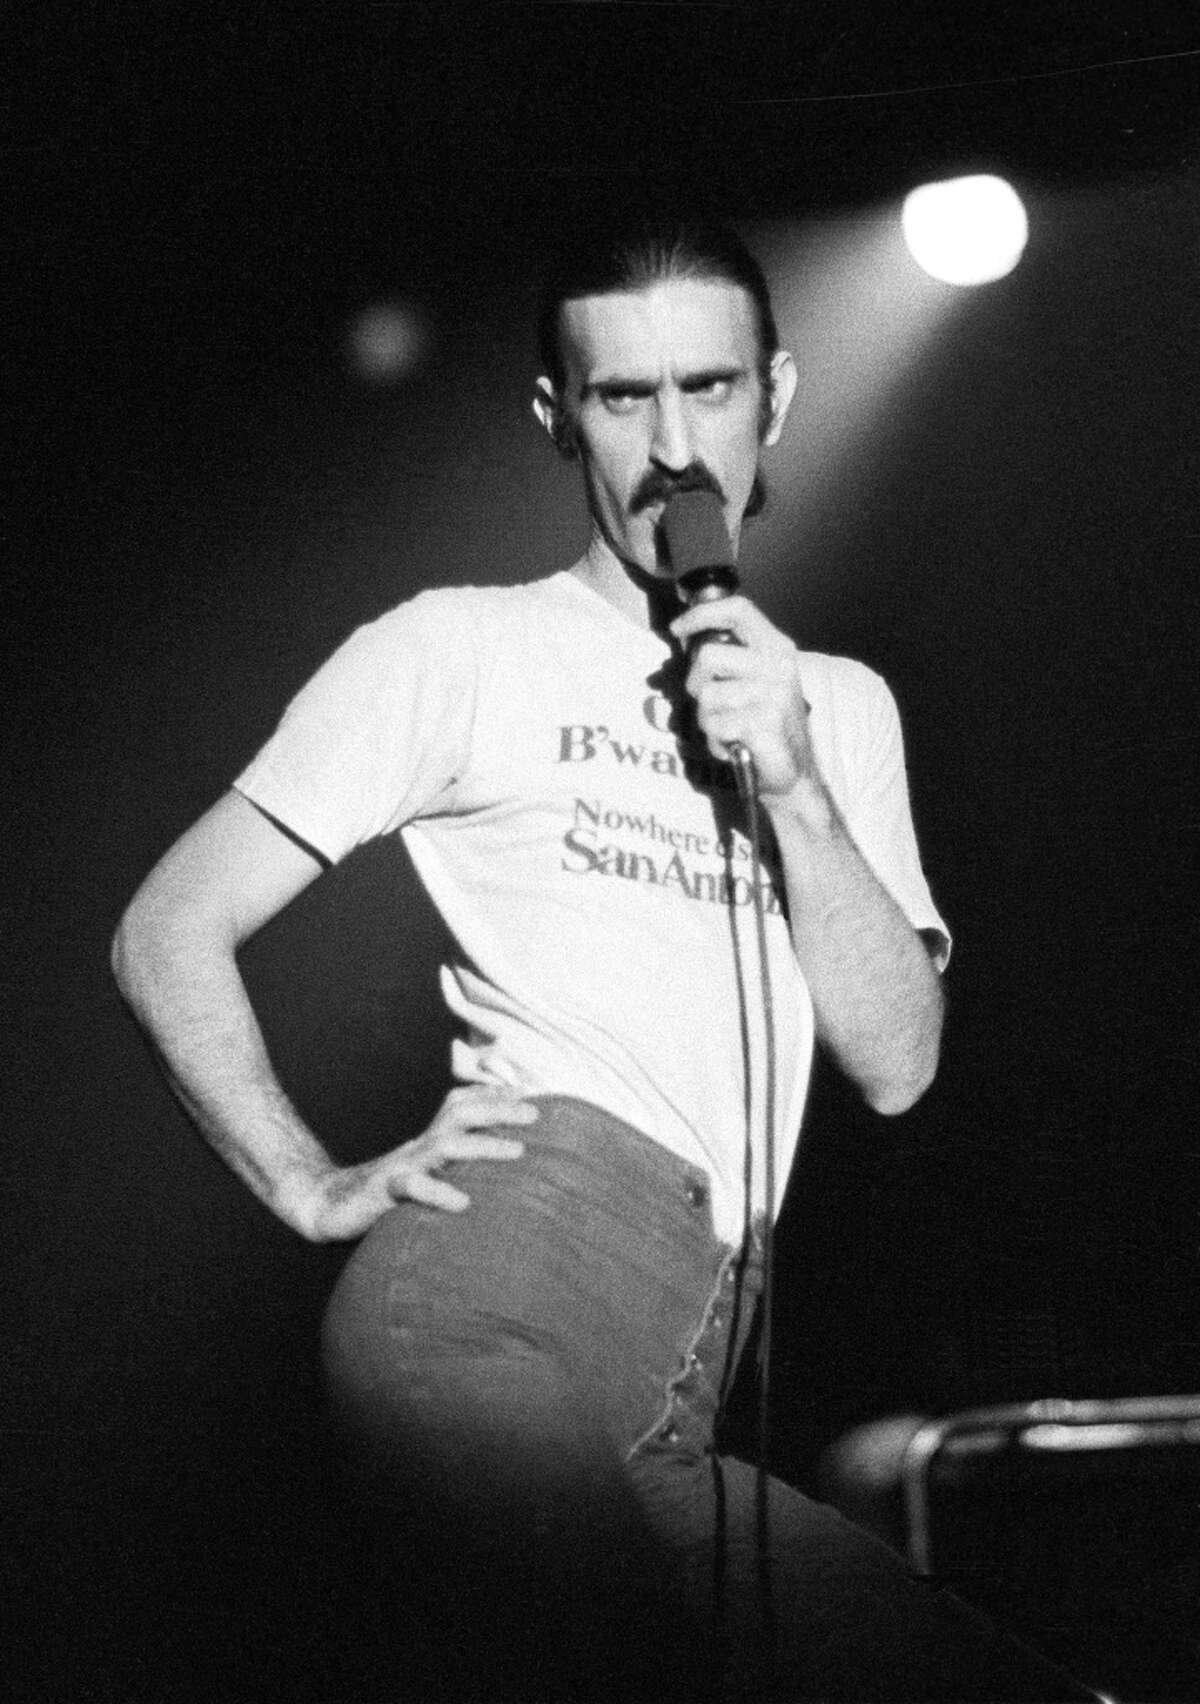 Frank Zappa, who died more than 25 years ago, will be present in holographic form in The Bizarre World of Frank Zappa, a concert tour scheduled to stop at the Palace Theatre in Albany on April 28, 2019.